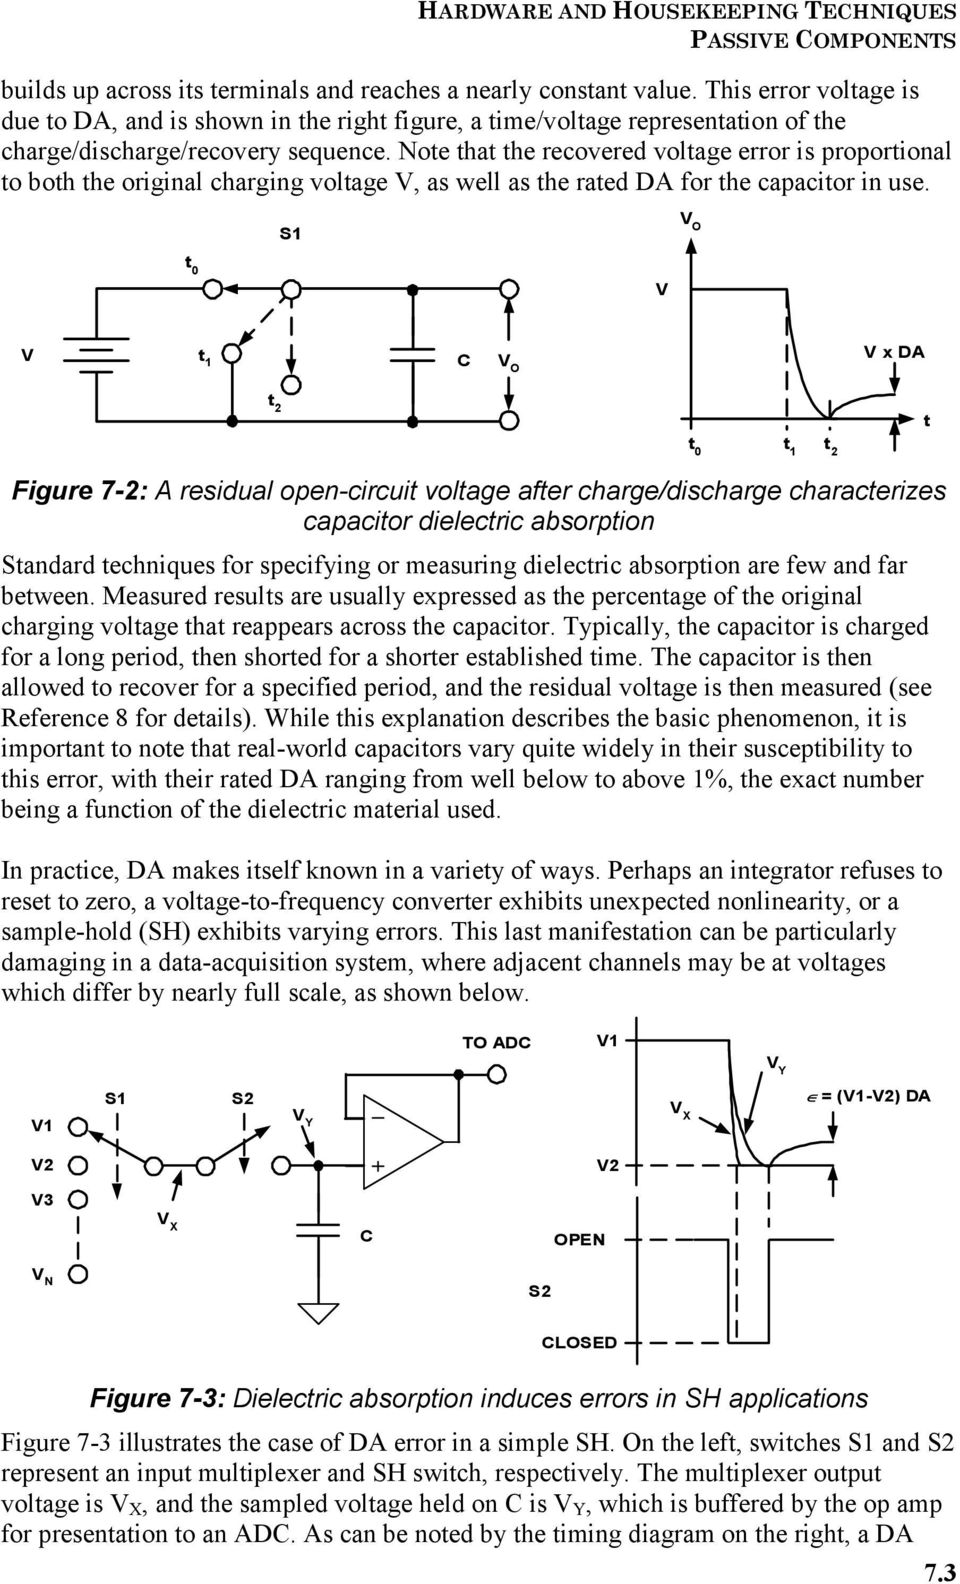 Hardware And Housekeeping Techniques Pdf Circuit Power Supply Regulator 15v 1a By Ic 7815 7915 Hd Walls Note That The Recovered Voltage Error Is Proportional To Both Original Charging V